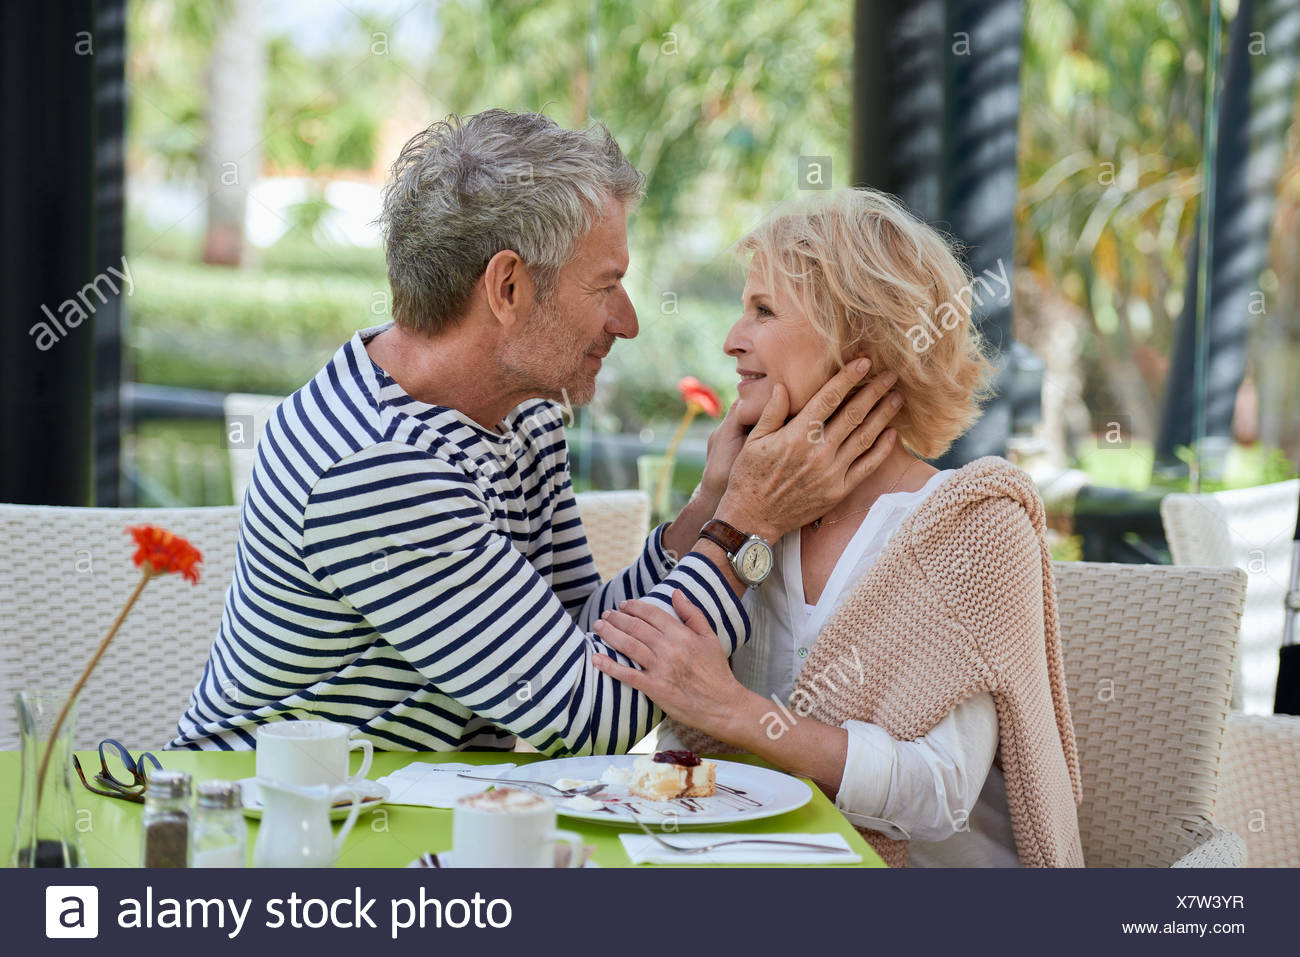 Couple, Best Ager, in the cafe, he tenderly holds her face in his hands were - Stock Image